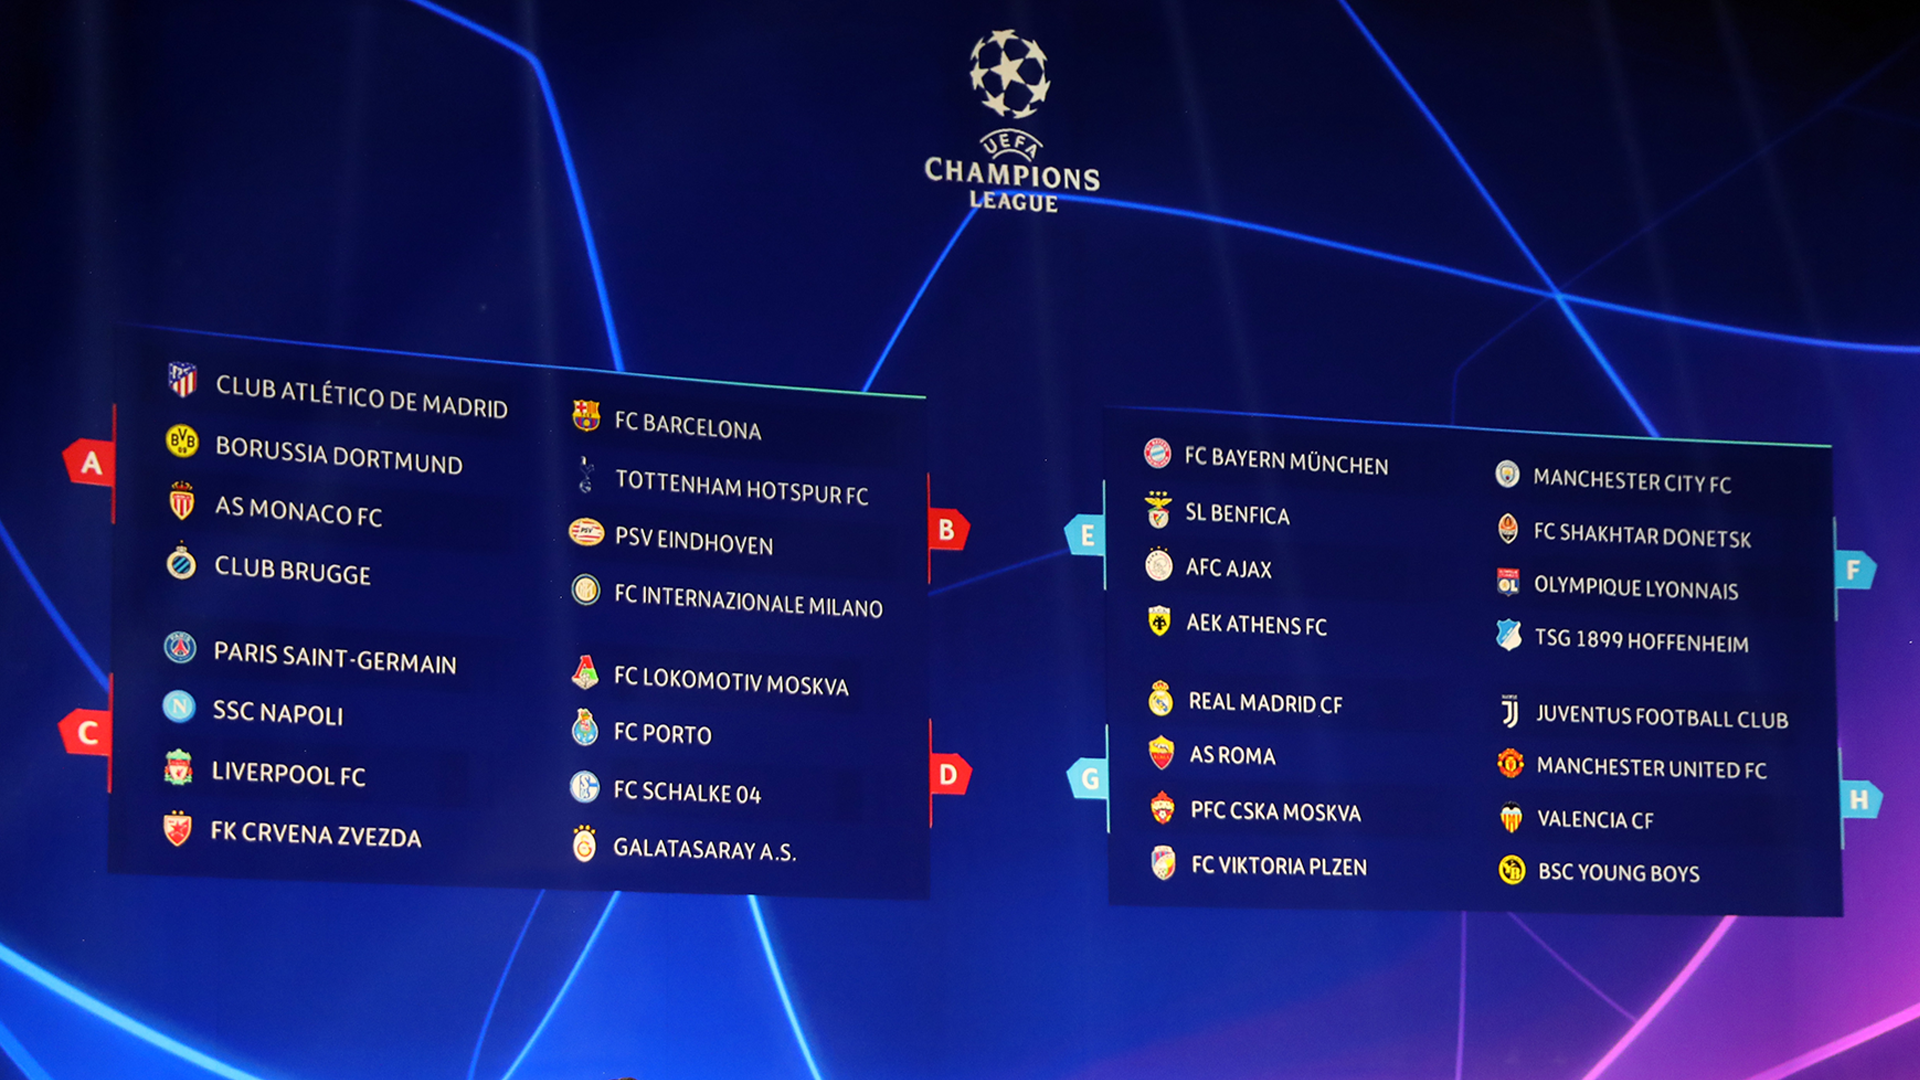 Champions League draw 2018-19